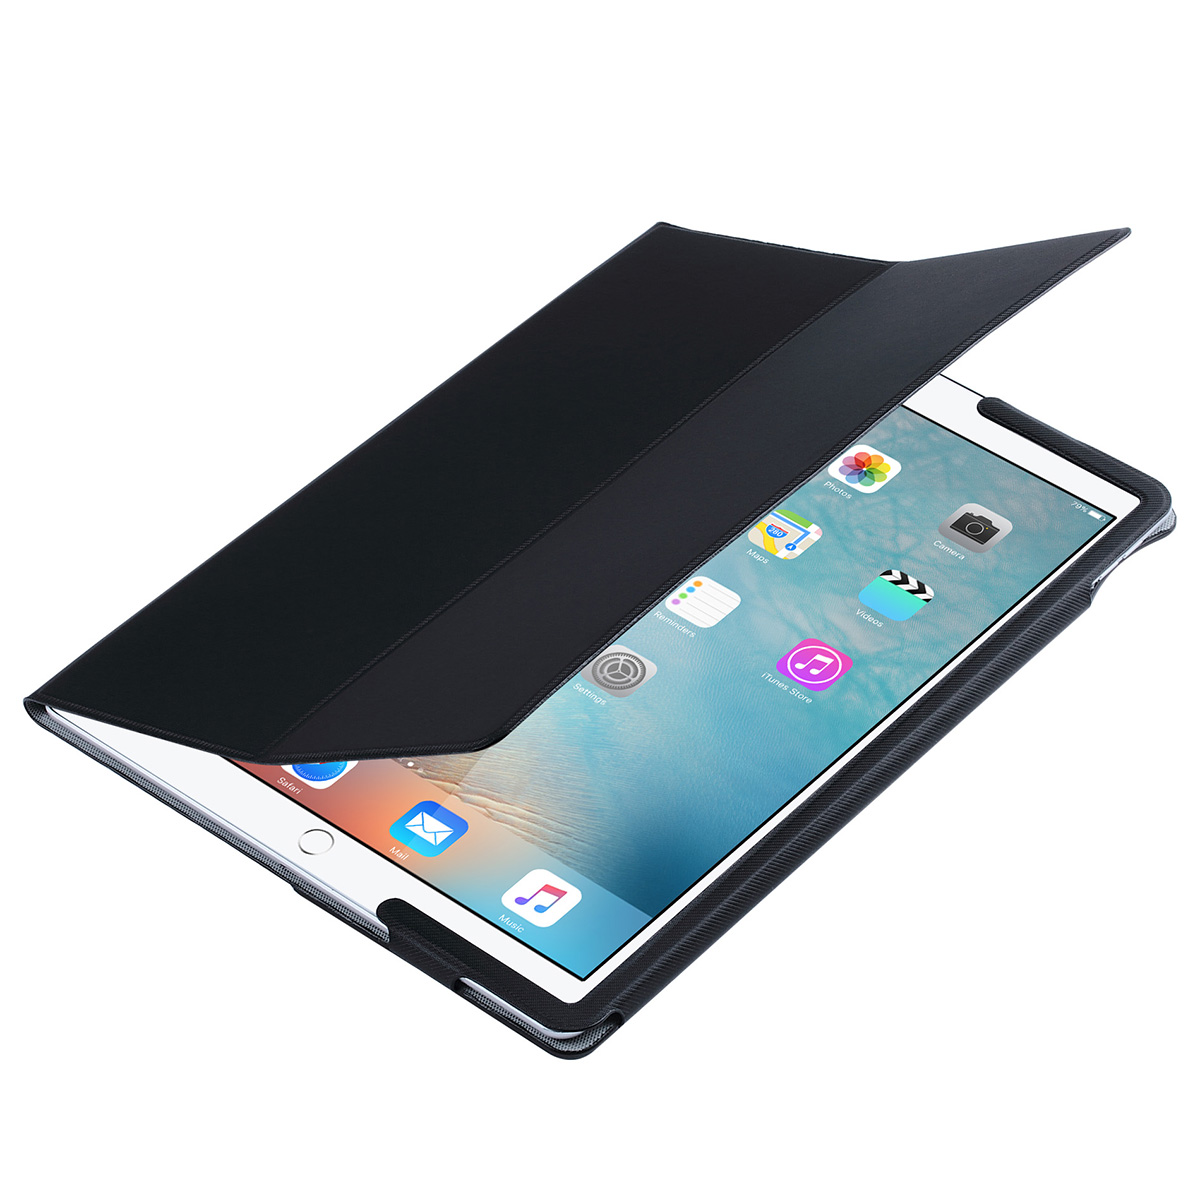 premium pu leather stand case smart cover for apple ipad. Black Bedroom Furniture Sets. Home Design Ideas